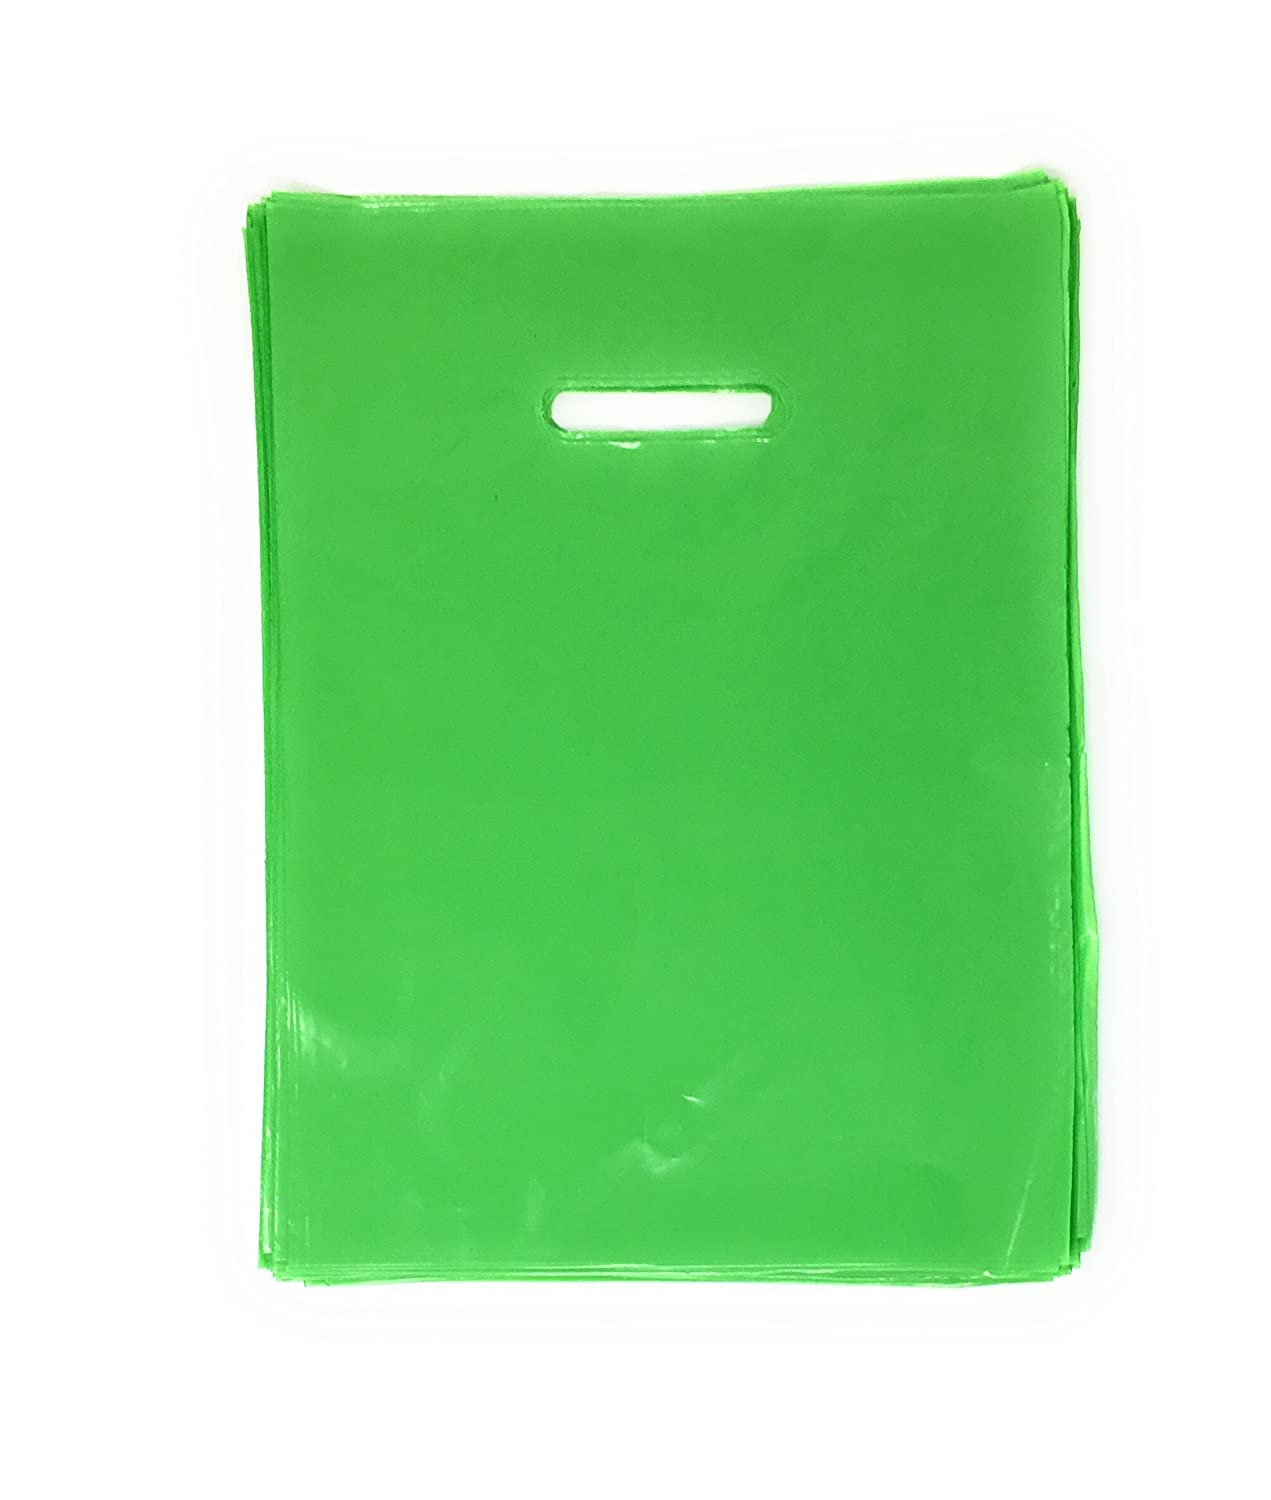 Green Merchandise Plastic Glossy Retail Bags 100 Pack 12' x 15' with 1.25 mil Thick | Die Cut Handles | Perfect for Shopping, Party Favors, Birthdays, Children Parties | Color Green | 100% Recyclable Plamar USA 12x15x1.25dcut-Green